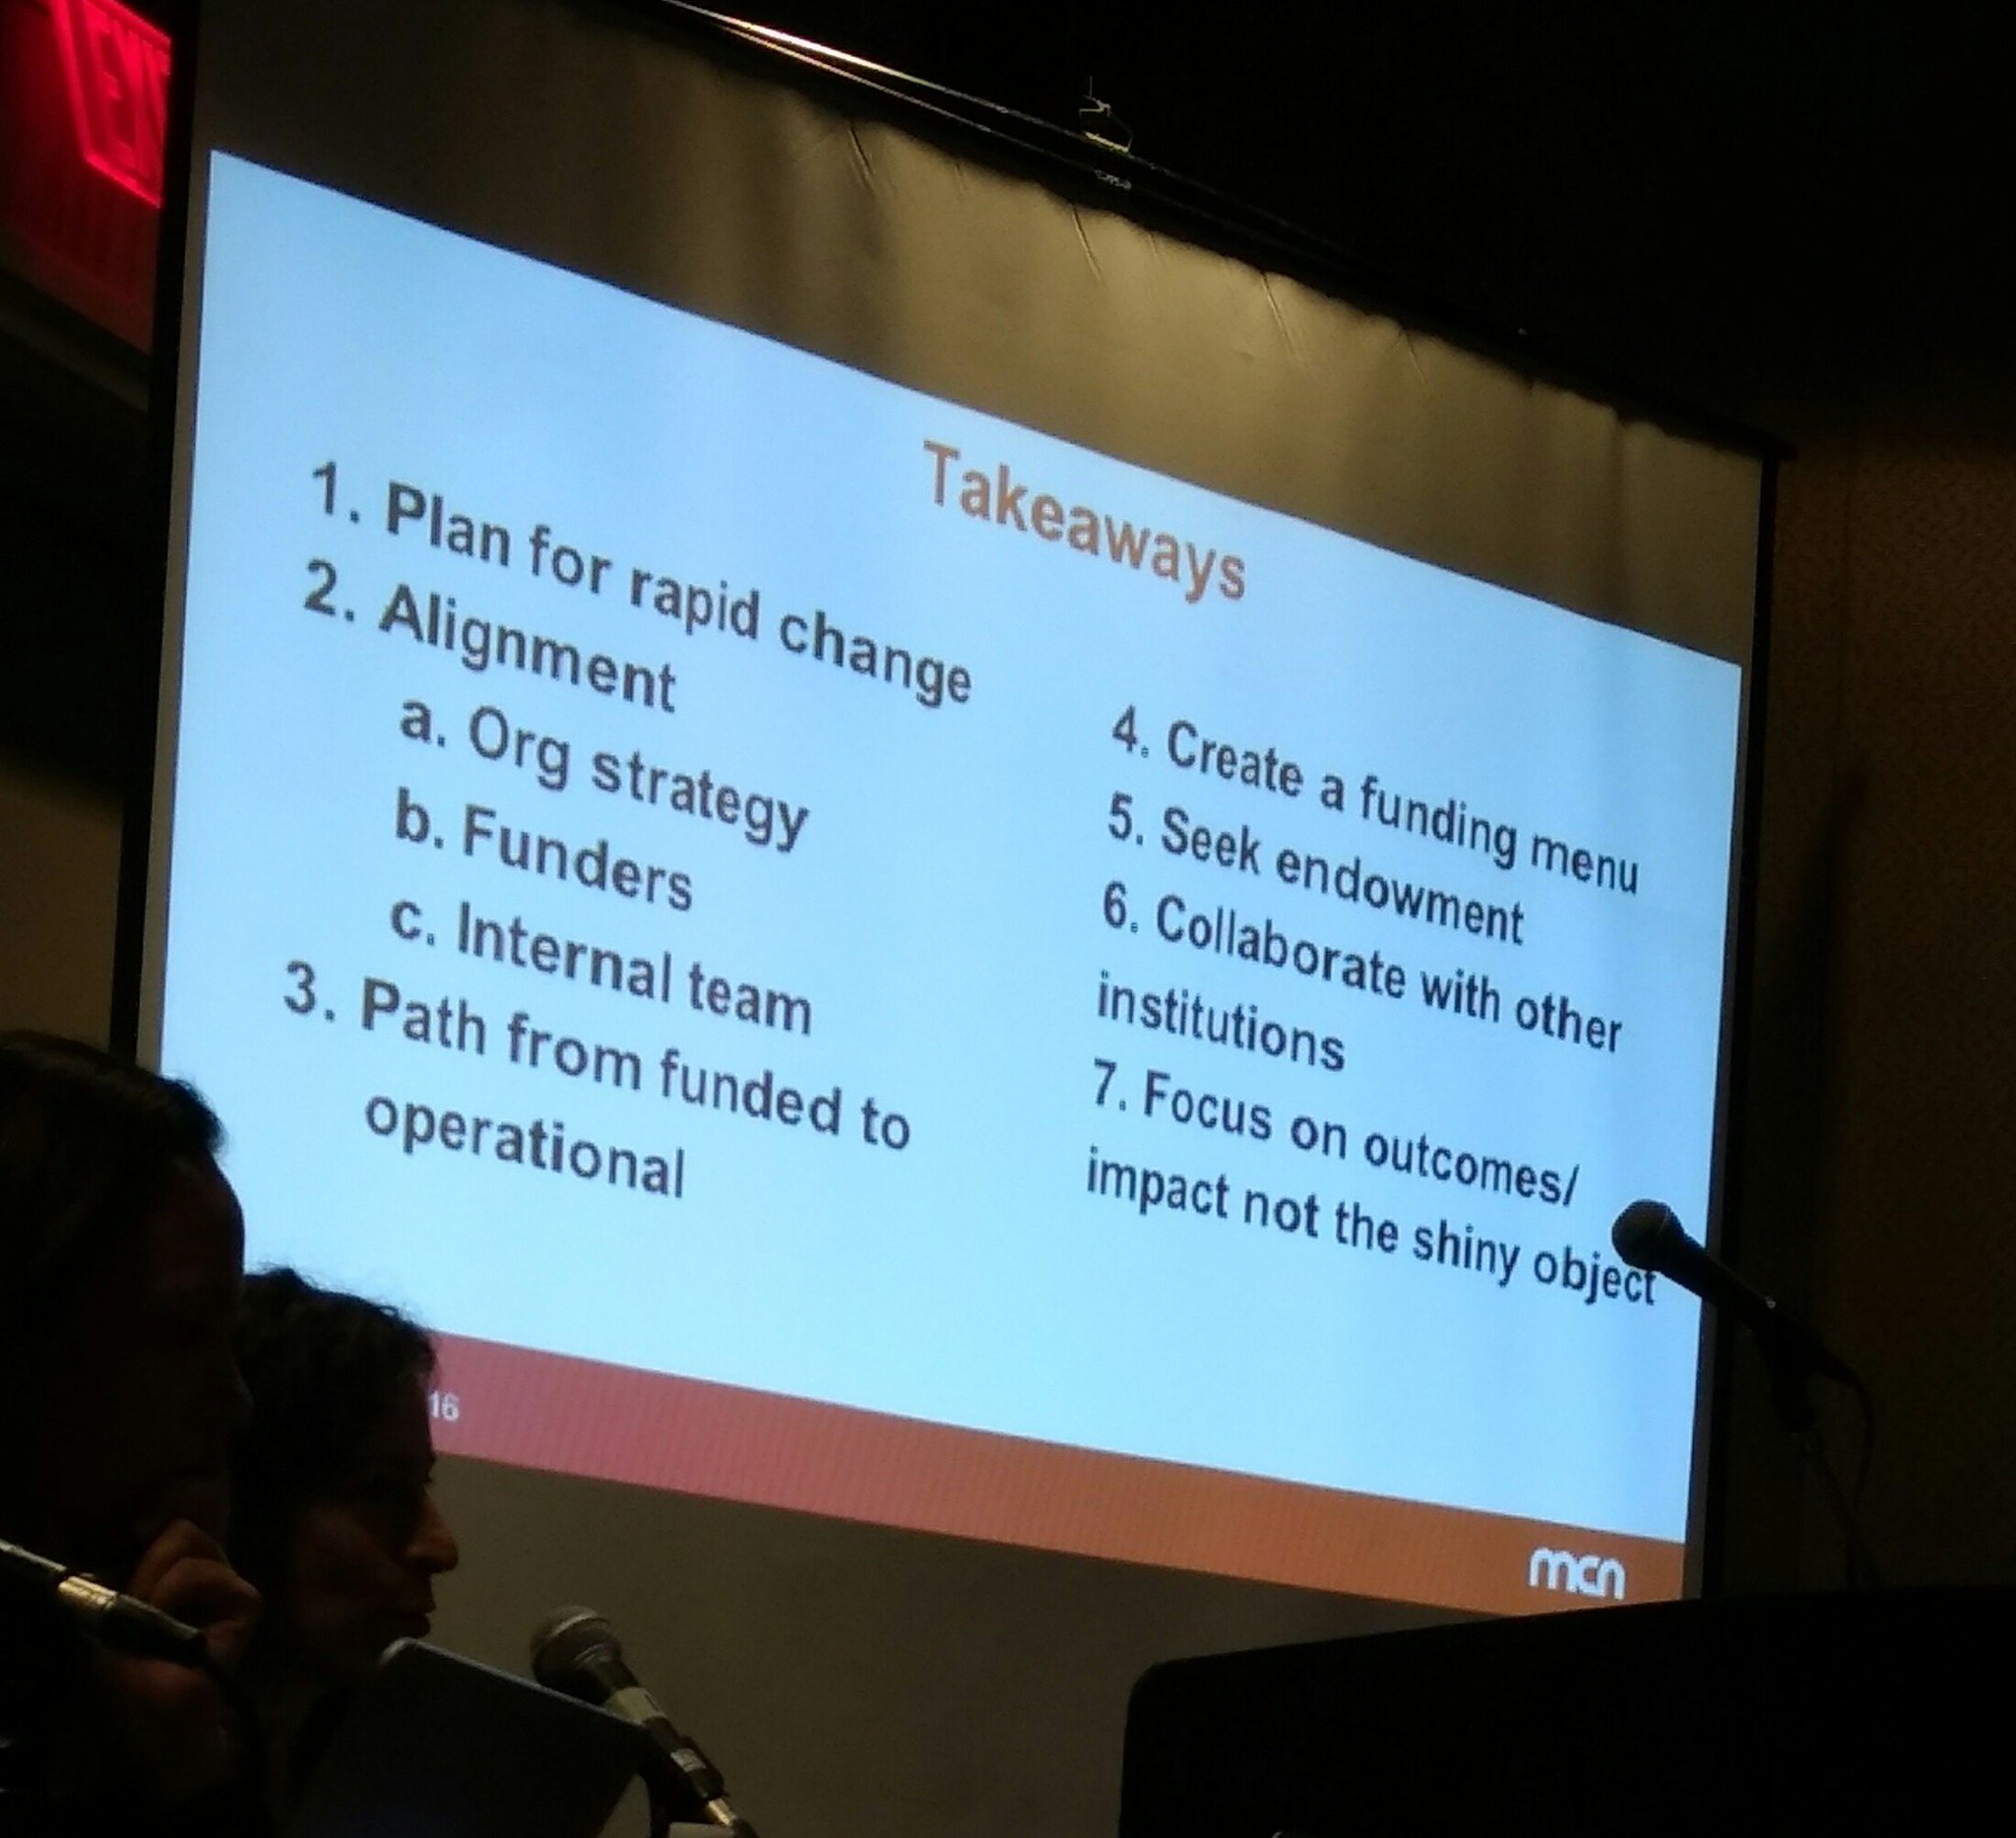 Takeaways from awesome funding models sesh #MCN2016  w @lhmann @dhegley @janecalexander @agnesstauber https://t.co/Y5xu2hIPEU